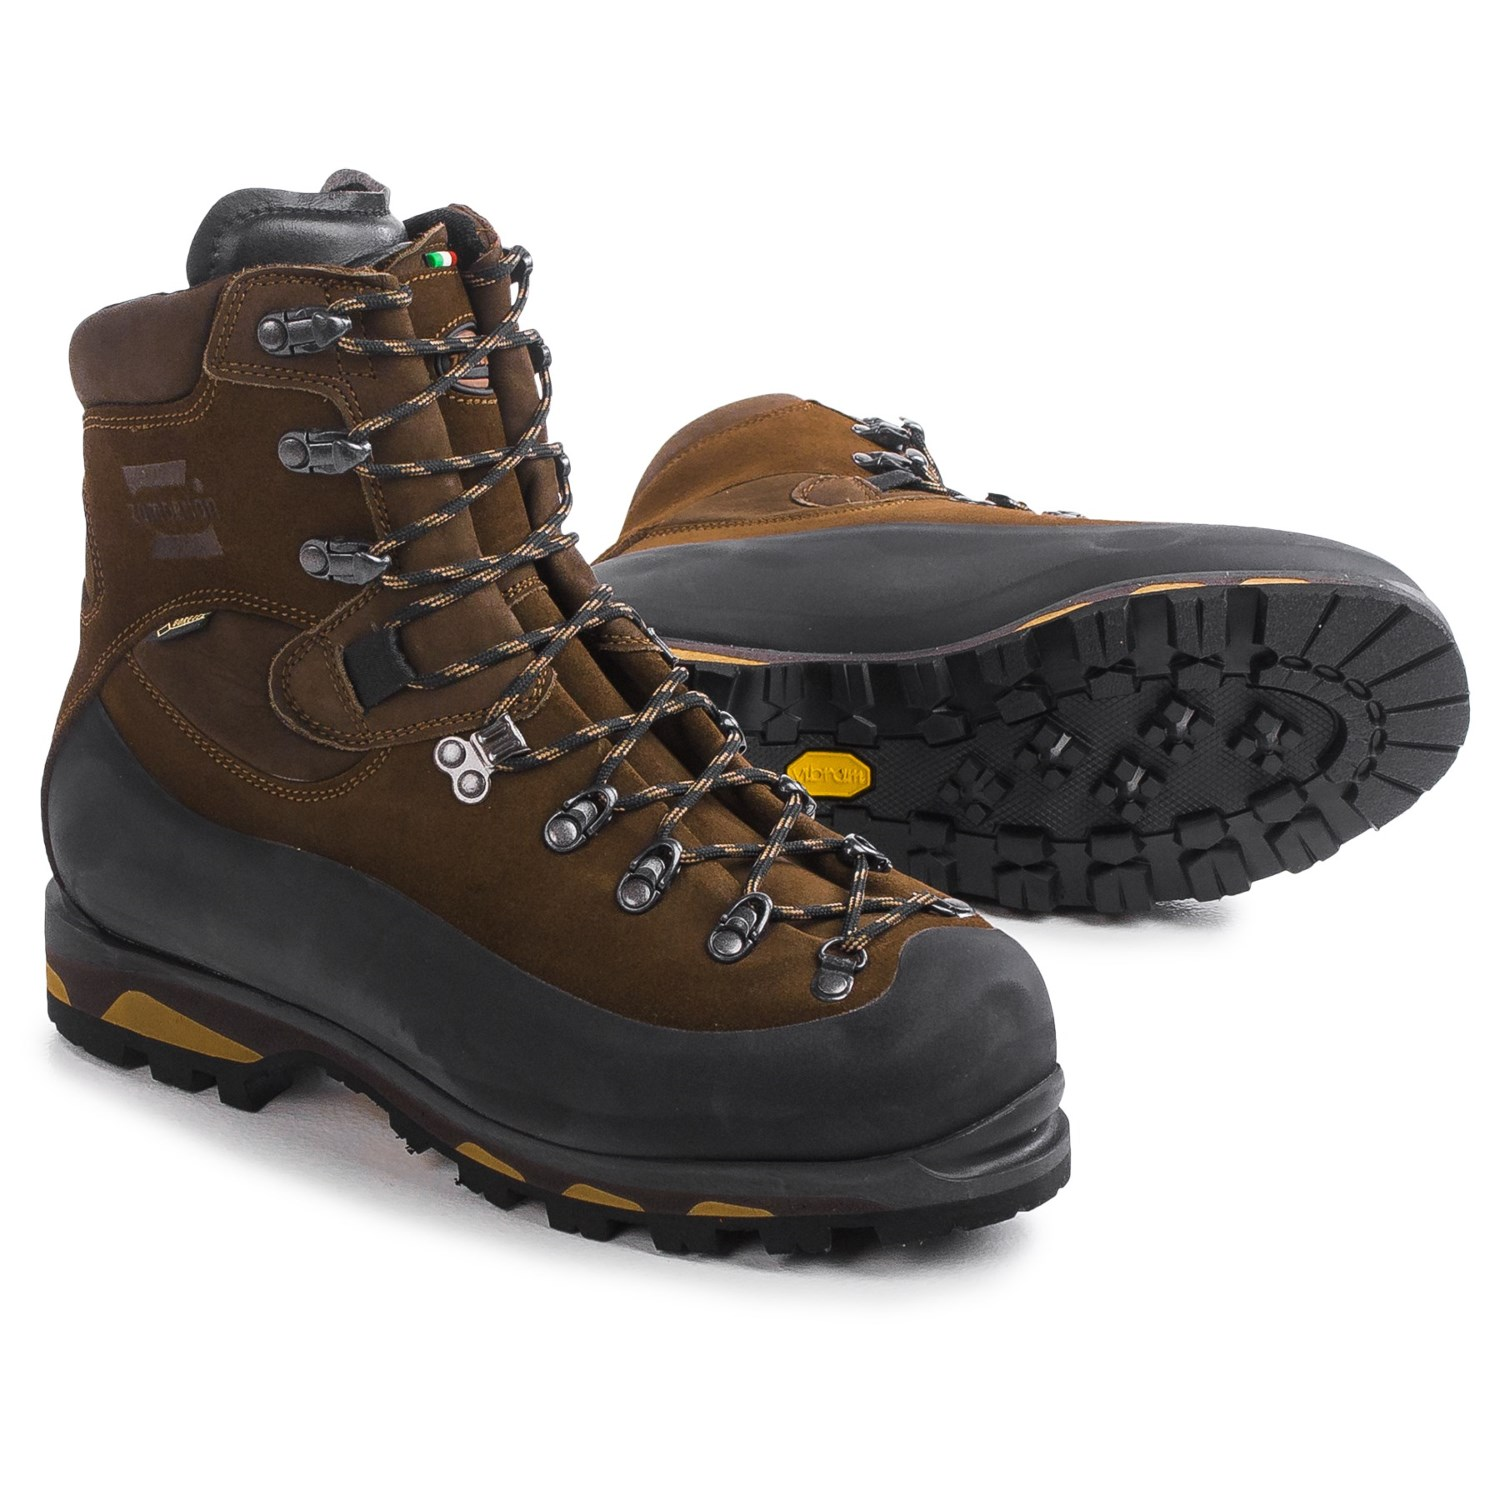 Zamberlan Expert Ibex Gore Tex 174 Rr Hunting Boots For Men